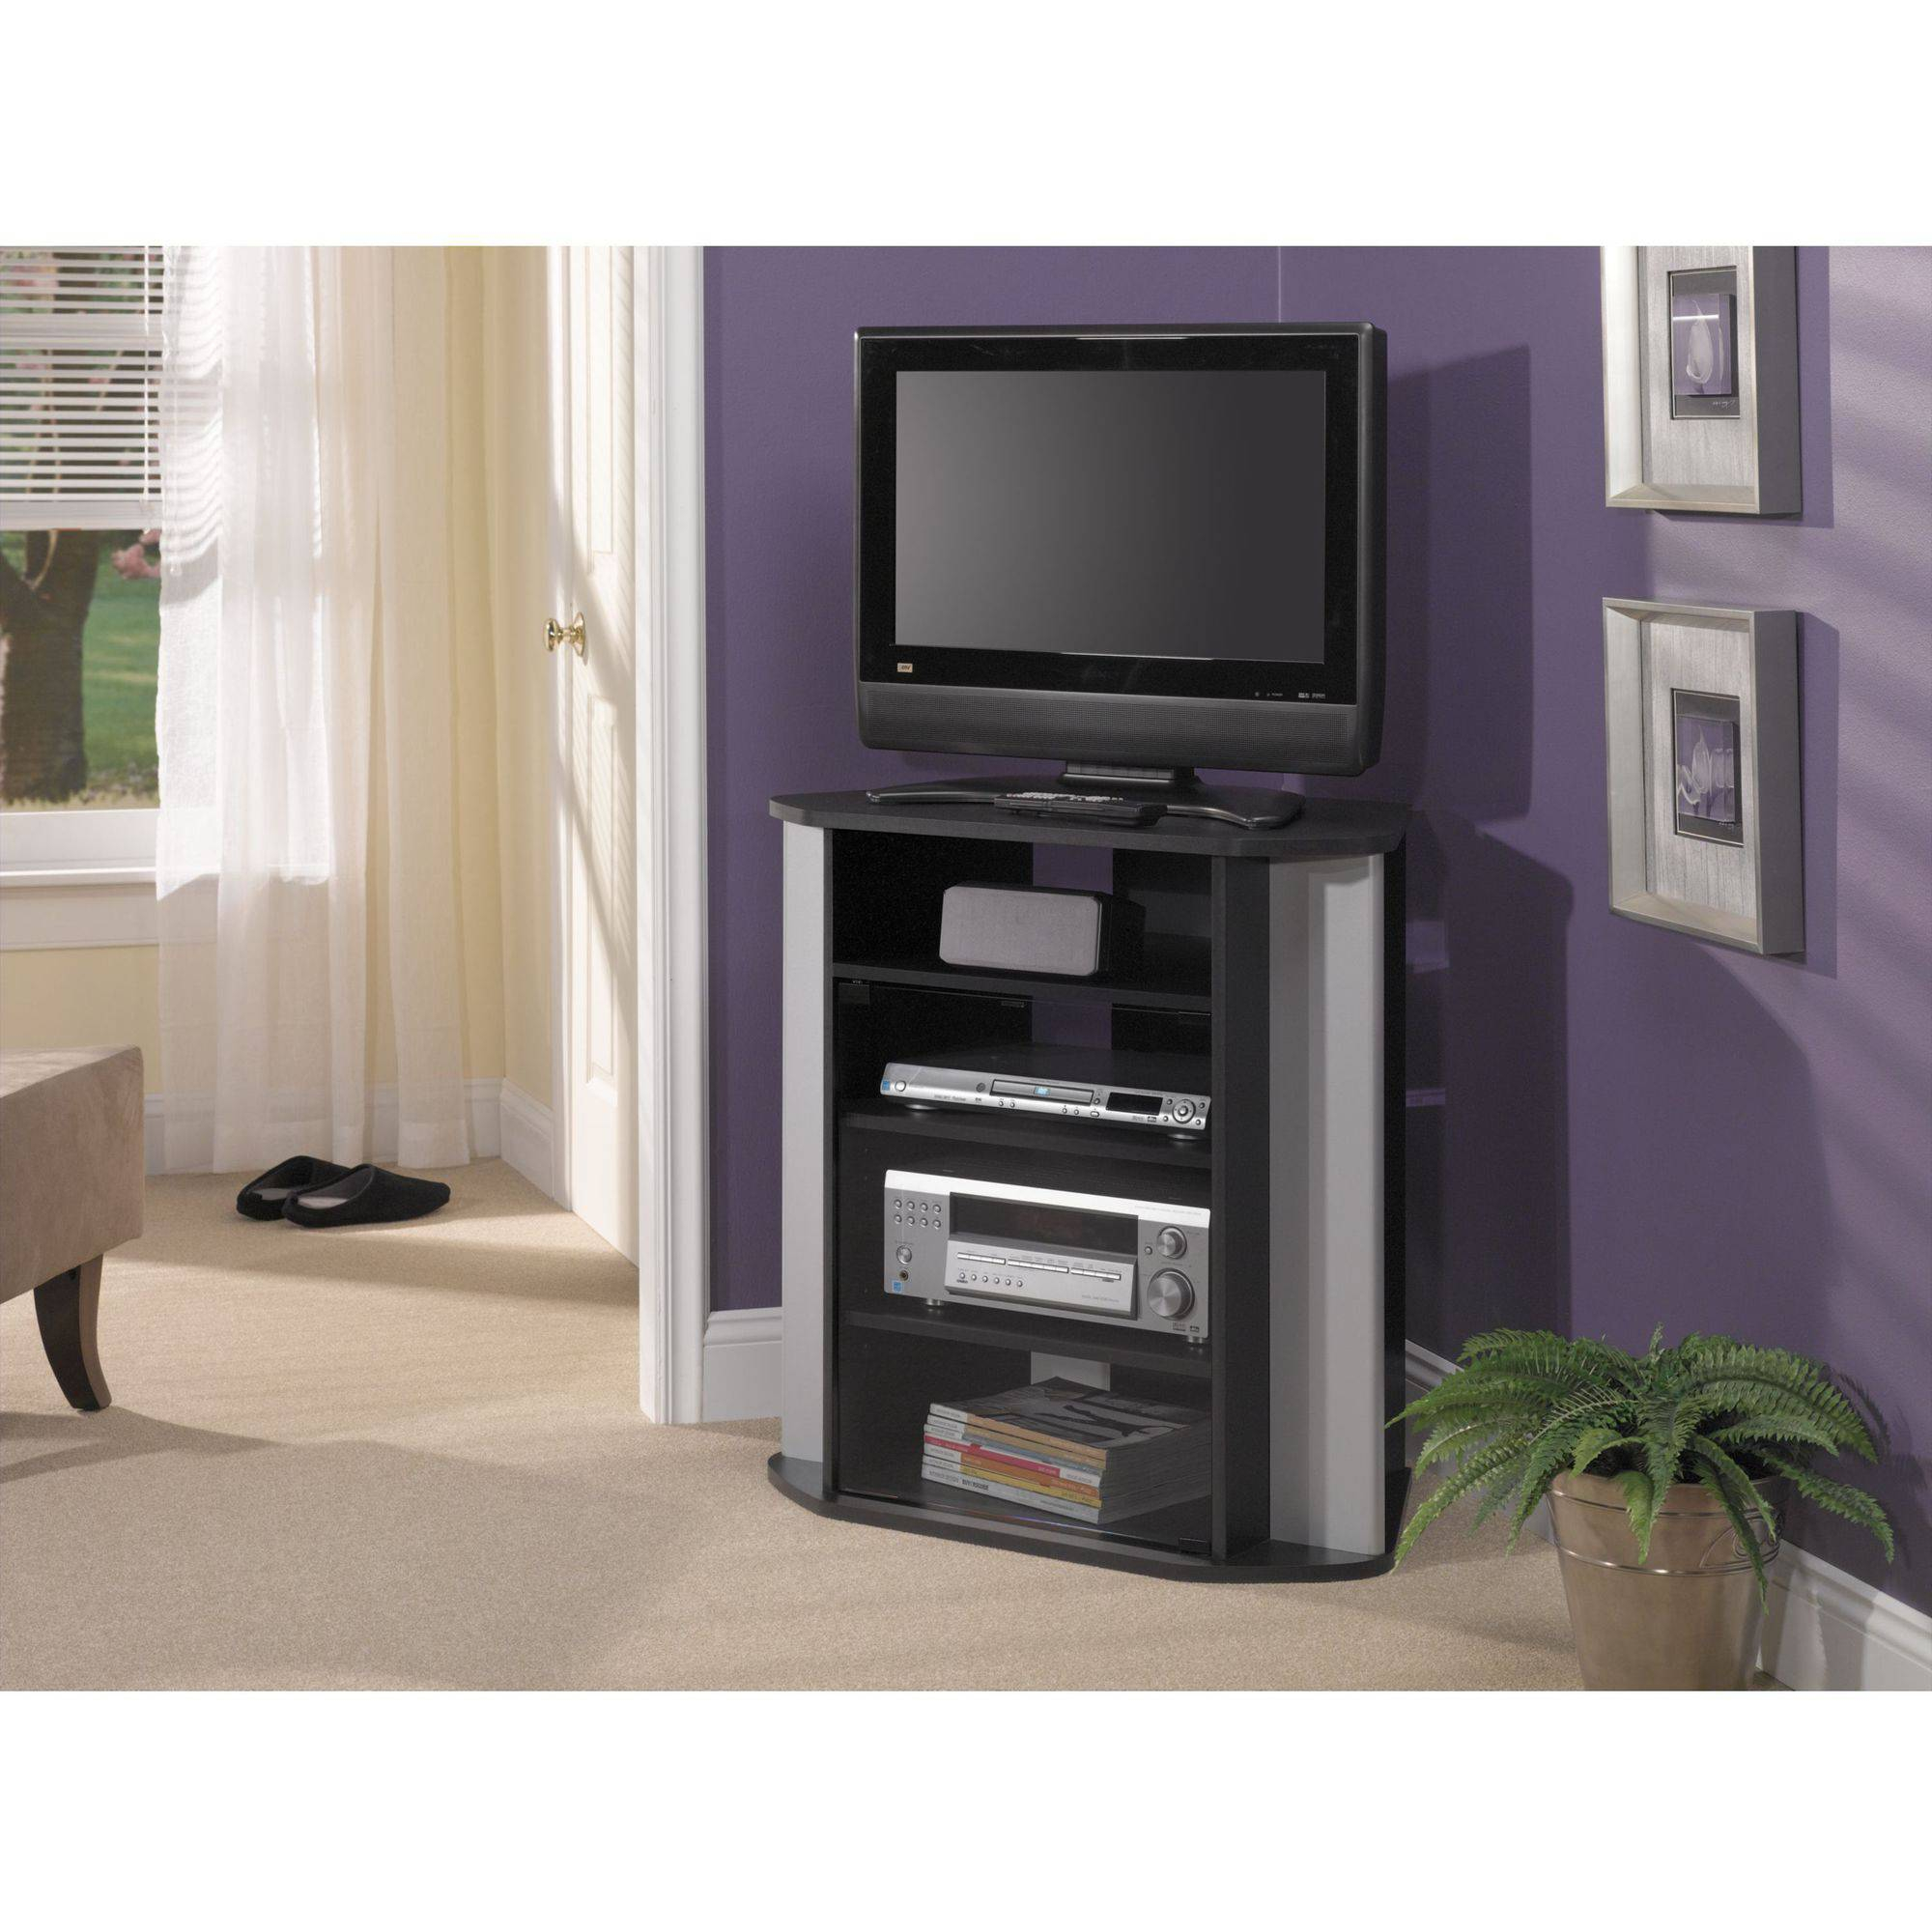 Bush Furniture Visions Tall Corner Tv Stand In Black And Metallic Walmart within measurements 2000 X 2000